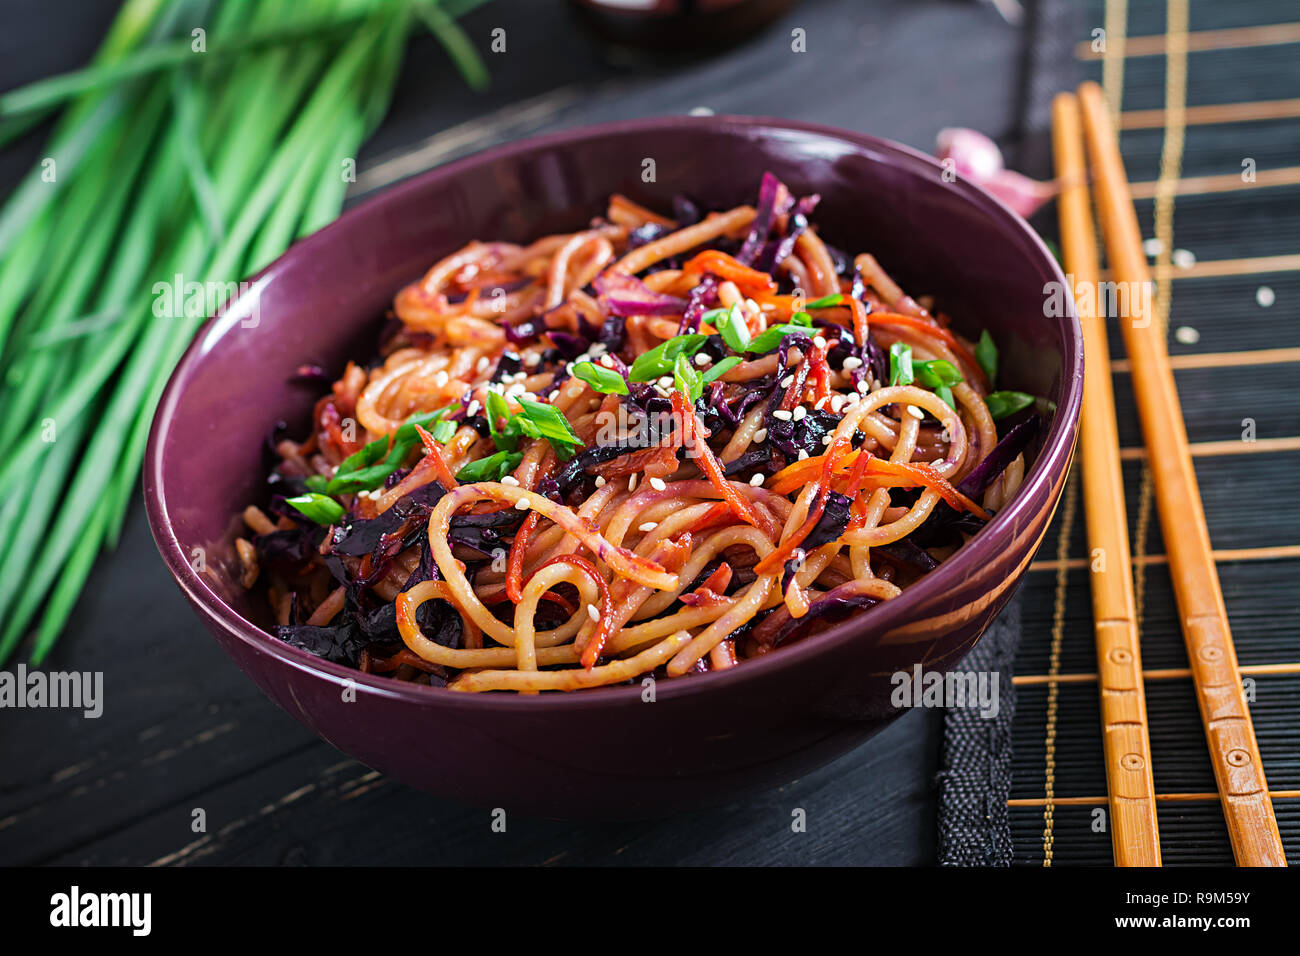 Chinese food. Vegan stir fry noodles with red cabbage and carrot in a bowl on a black wooden background. Asian cuisine meal. Stock Photo